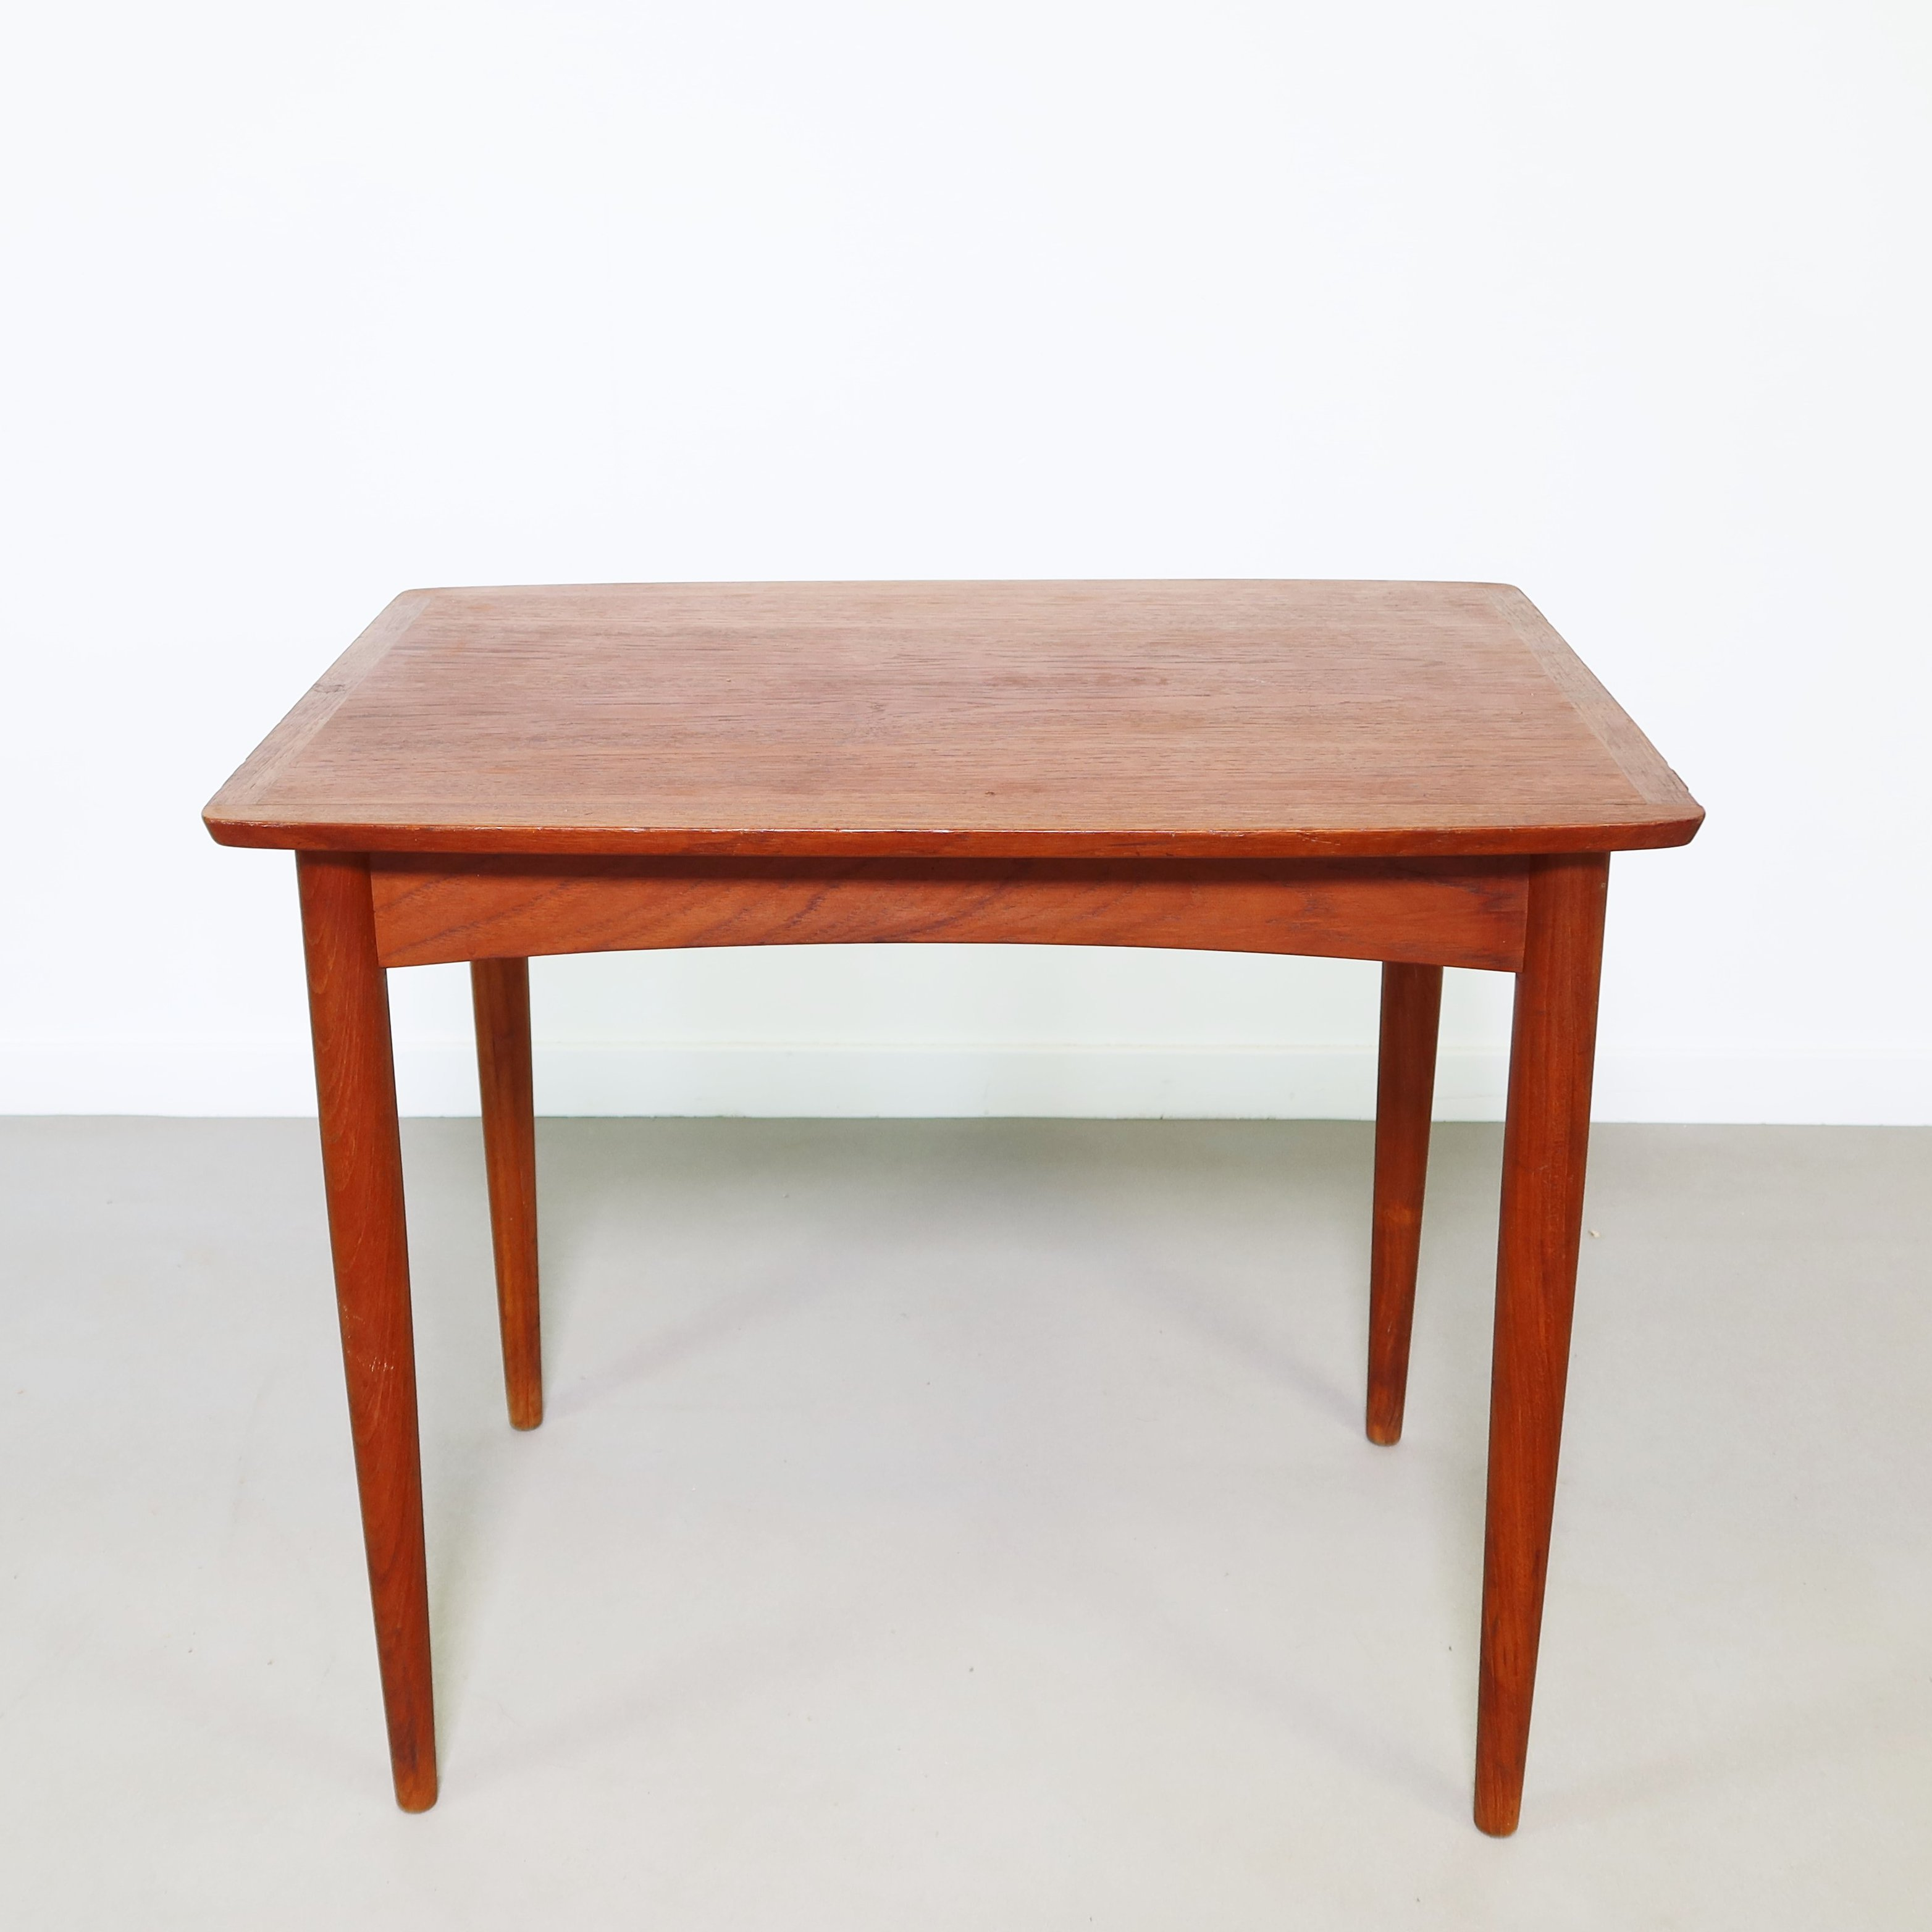 Picture of: Small Teak Side Table By Mobel Intarasia 1960s 131979